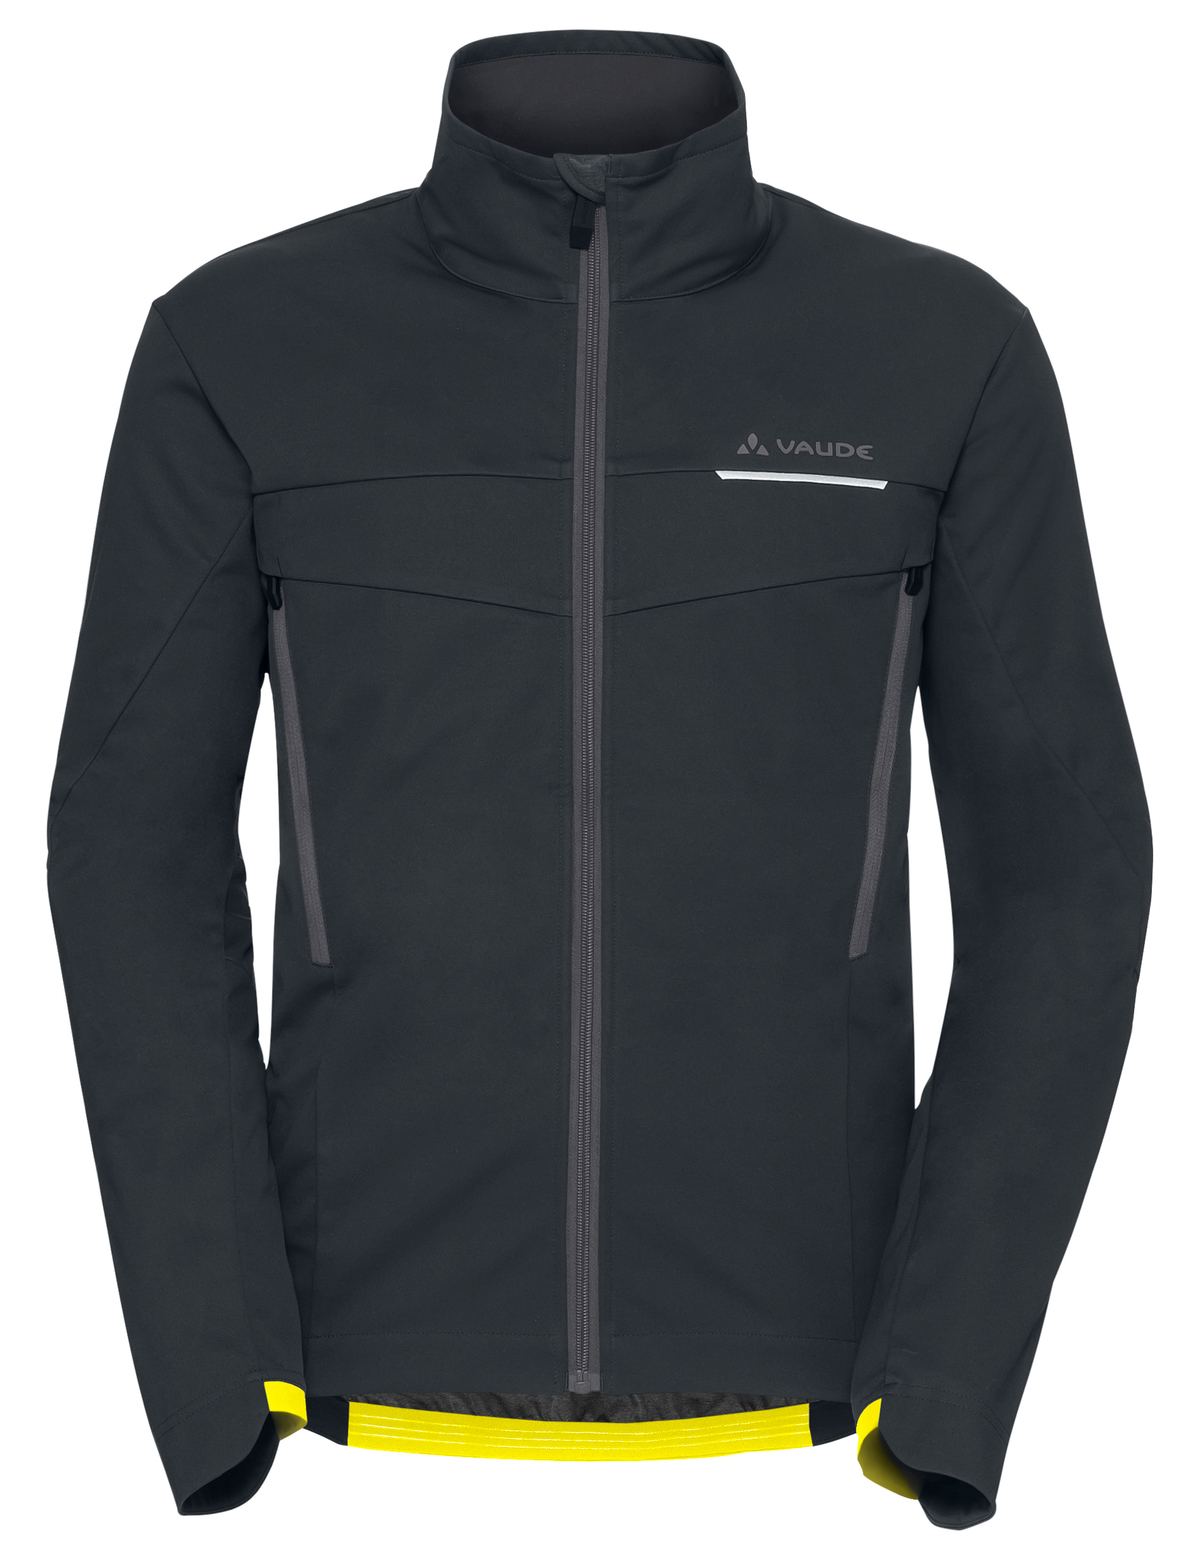 VAUDE Men´s Larrau Softshell Jacket phantom black Größe XL - VAUDE Men´s Larrau Softshell Jacket phantom black Größe XL